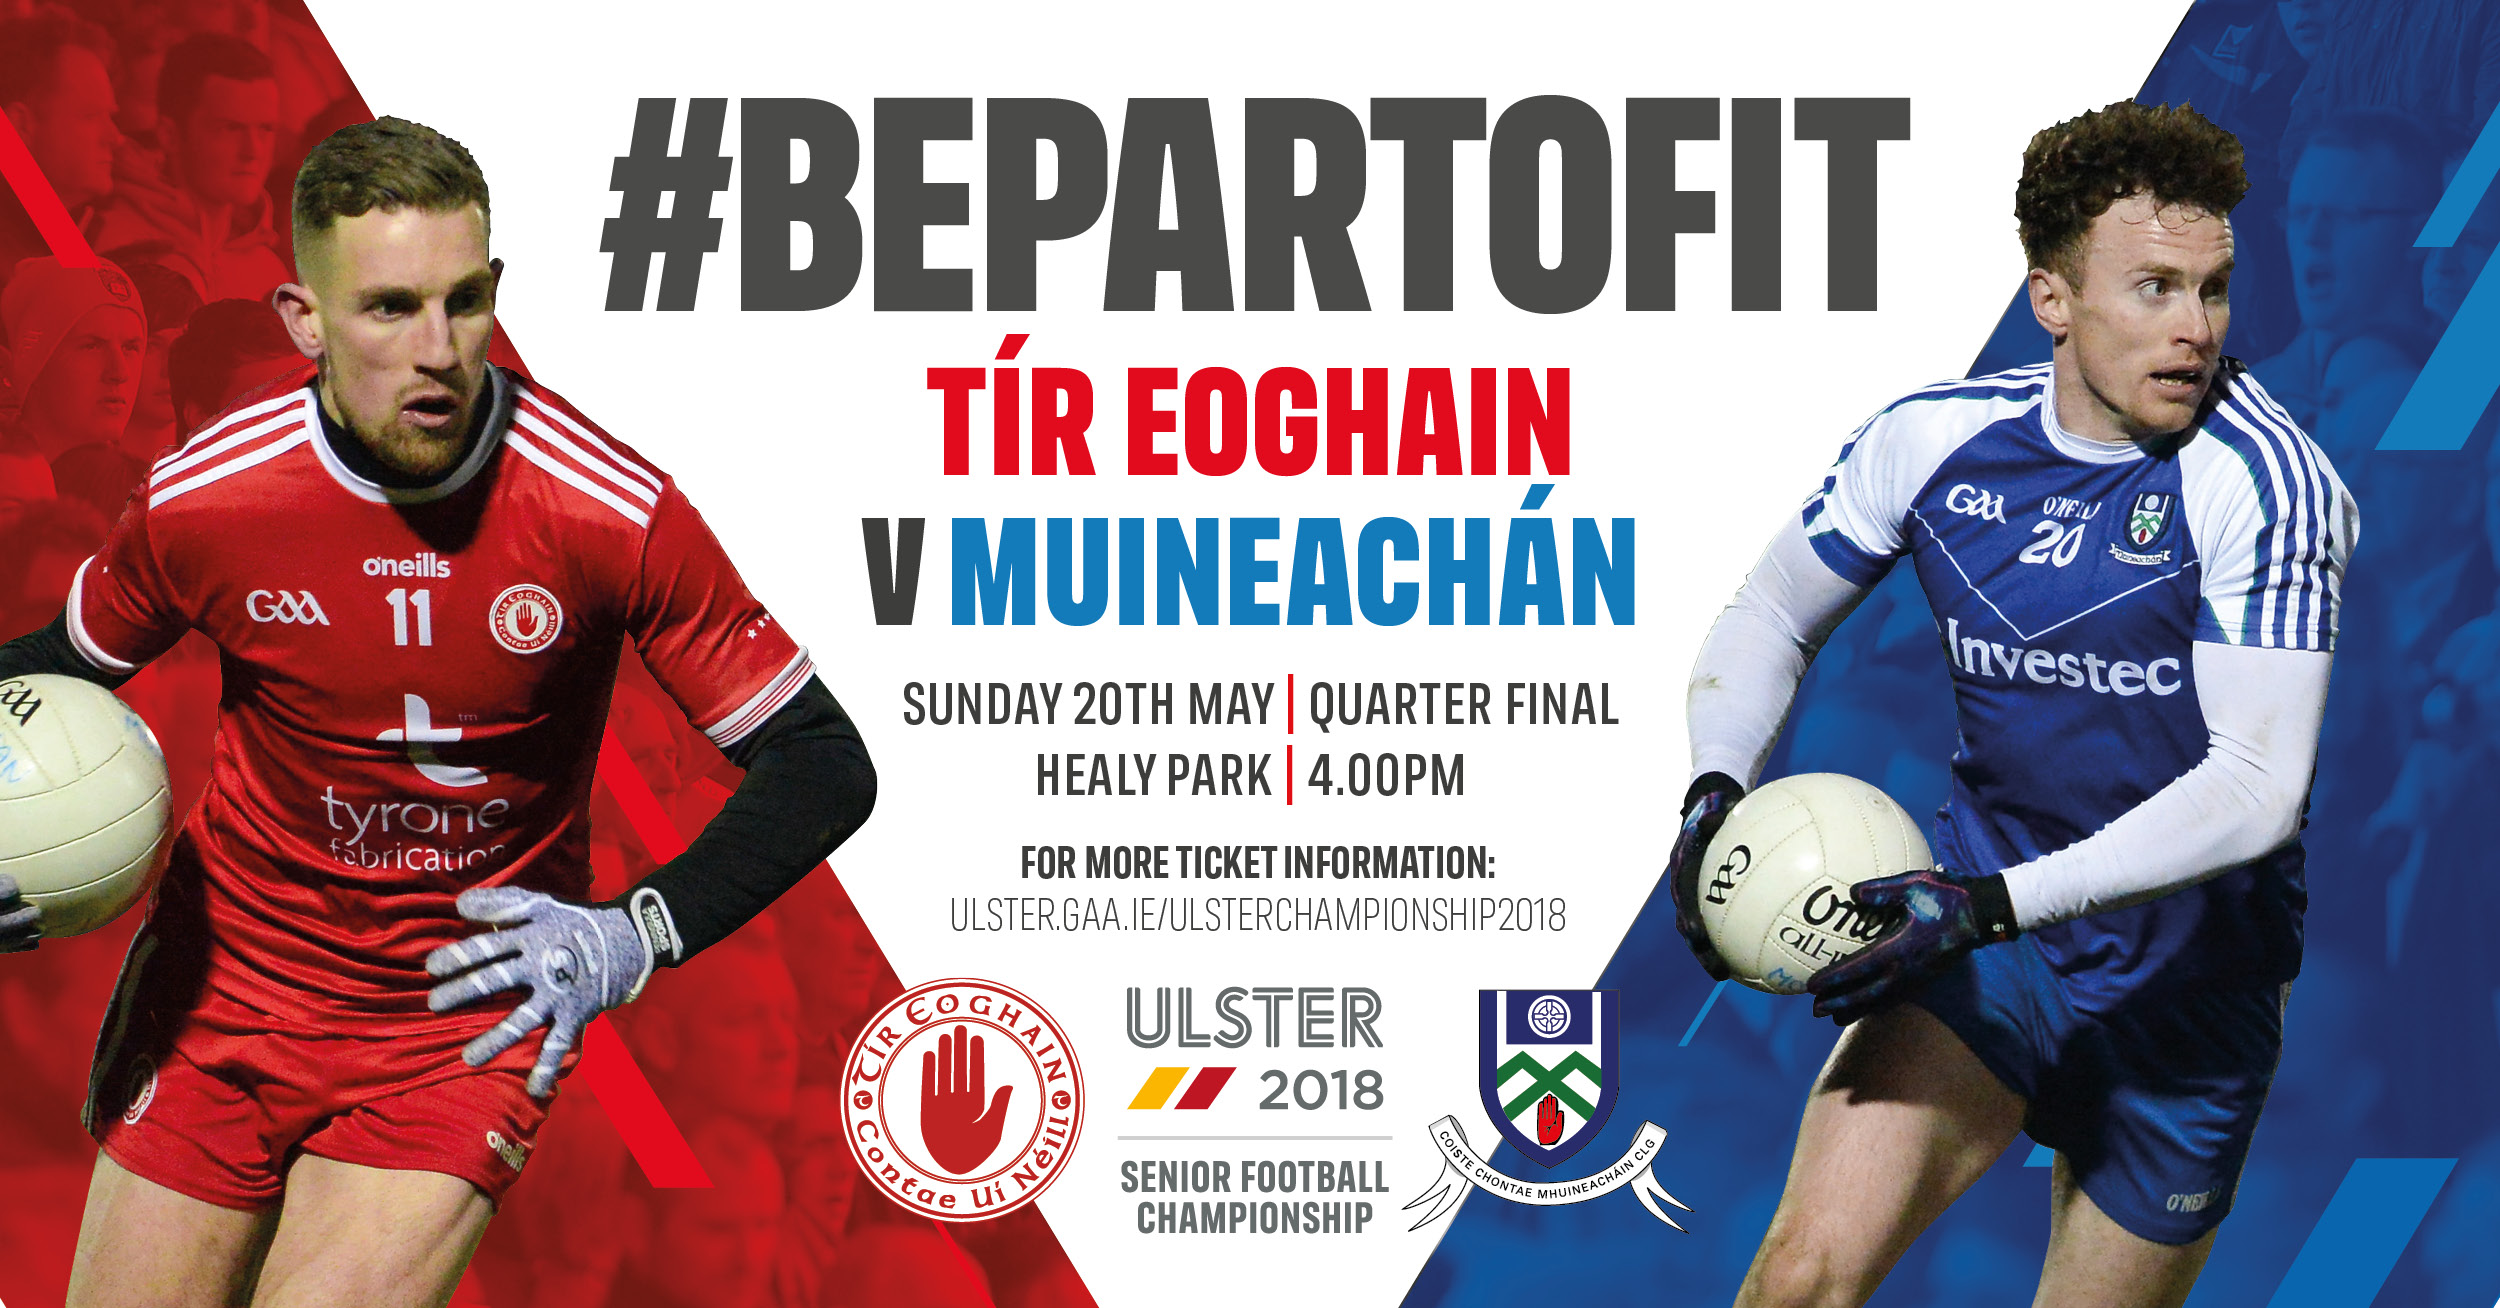 Tyrone v Monaghan Match Day Information